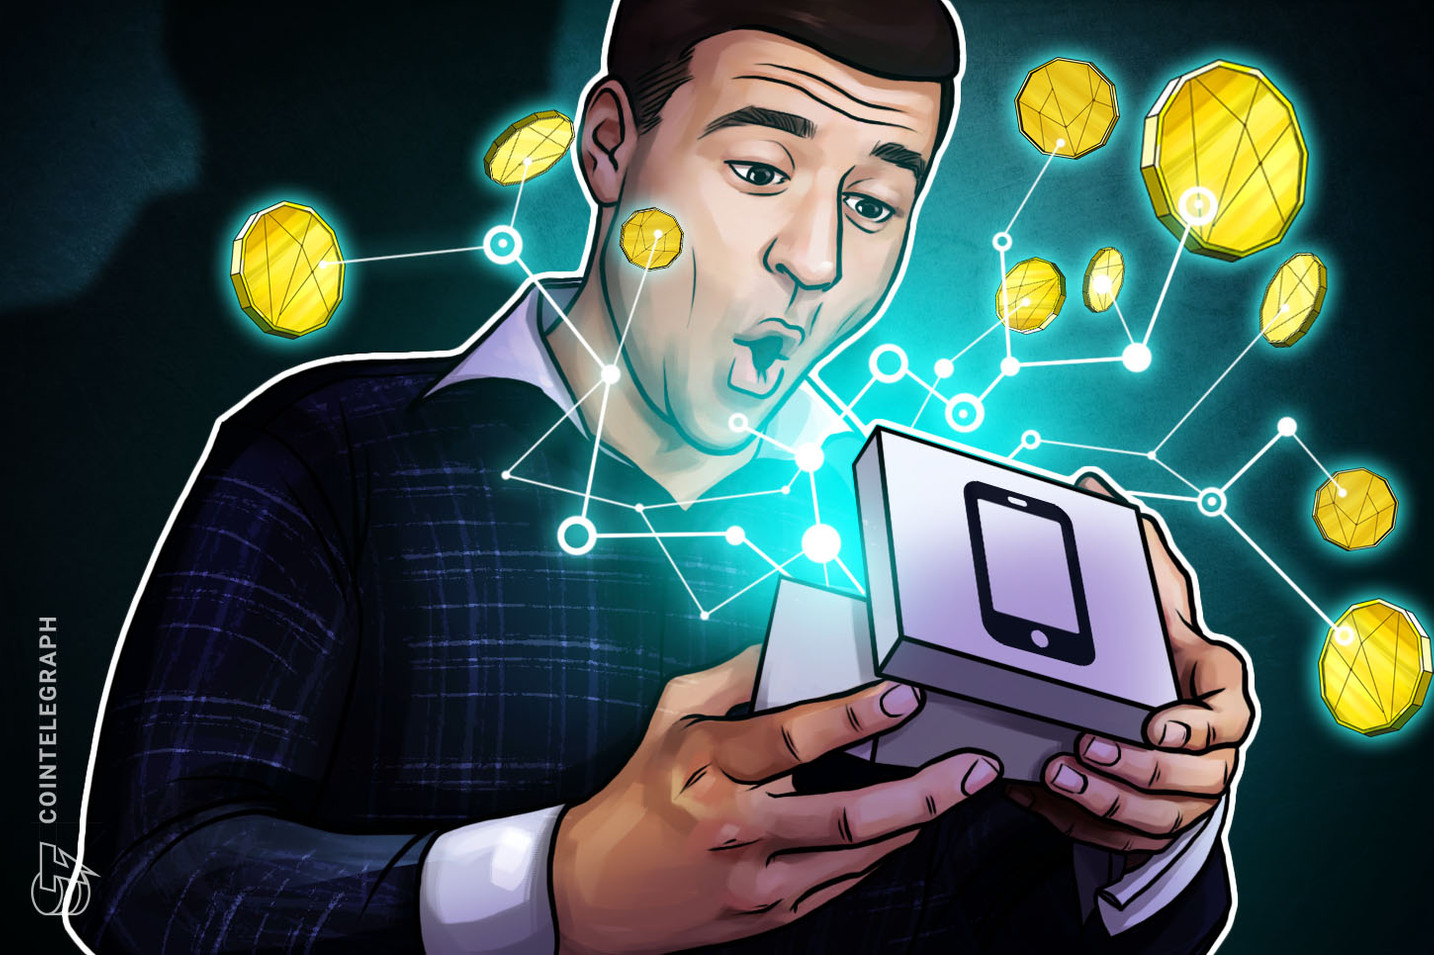 Celo Raises $30 Million for Stablecoin-Based Smartphone Payment Plans